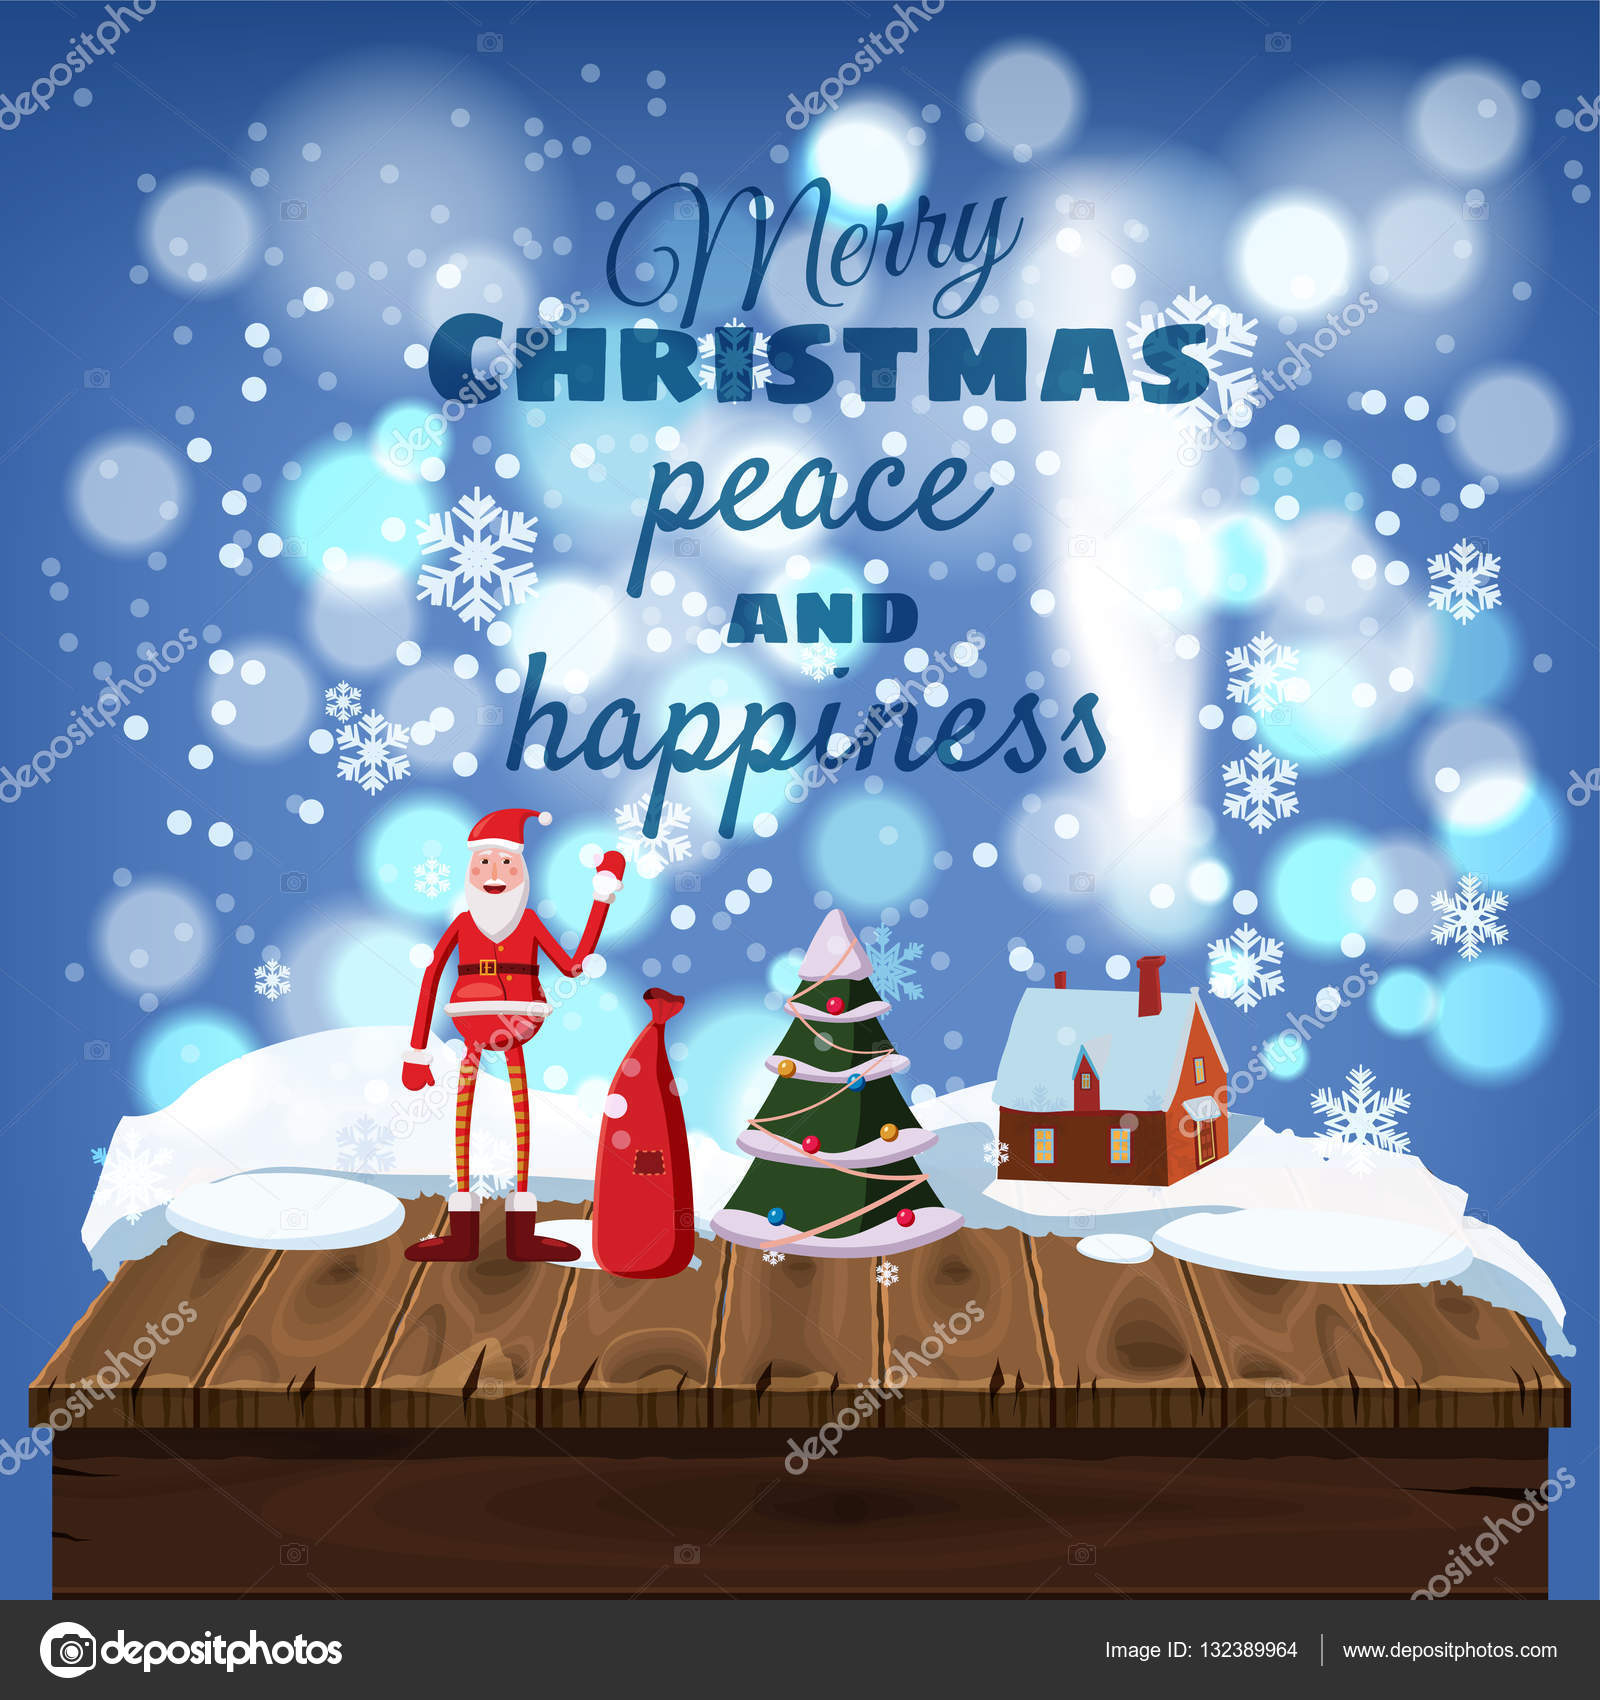 Cute christmas greeting cards wooden table covered with snow cute christmas greeting cards wooden table covered with snow santa claus with a bag of gifts vacation home cartoon style vector illustration vector kristyandbryce Image collections